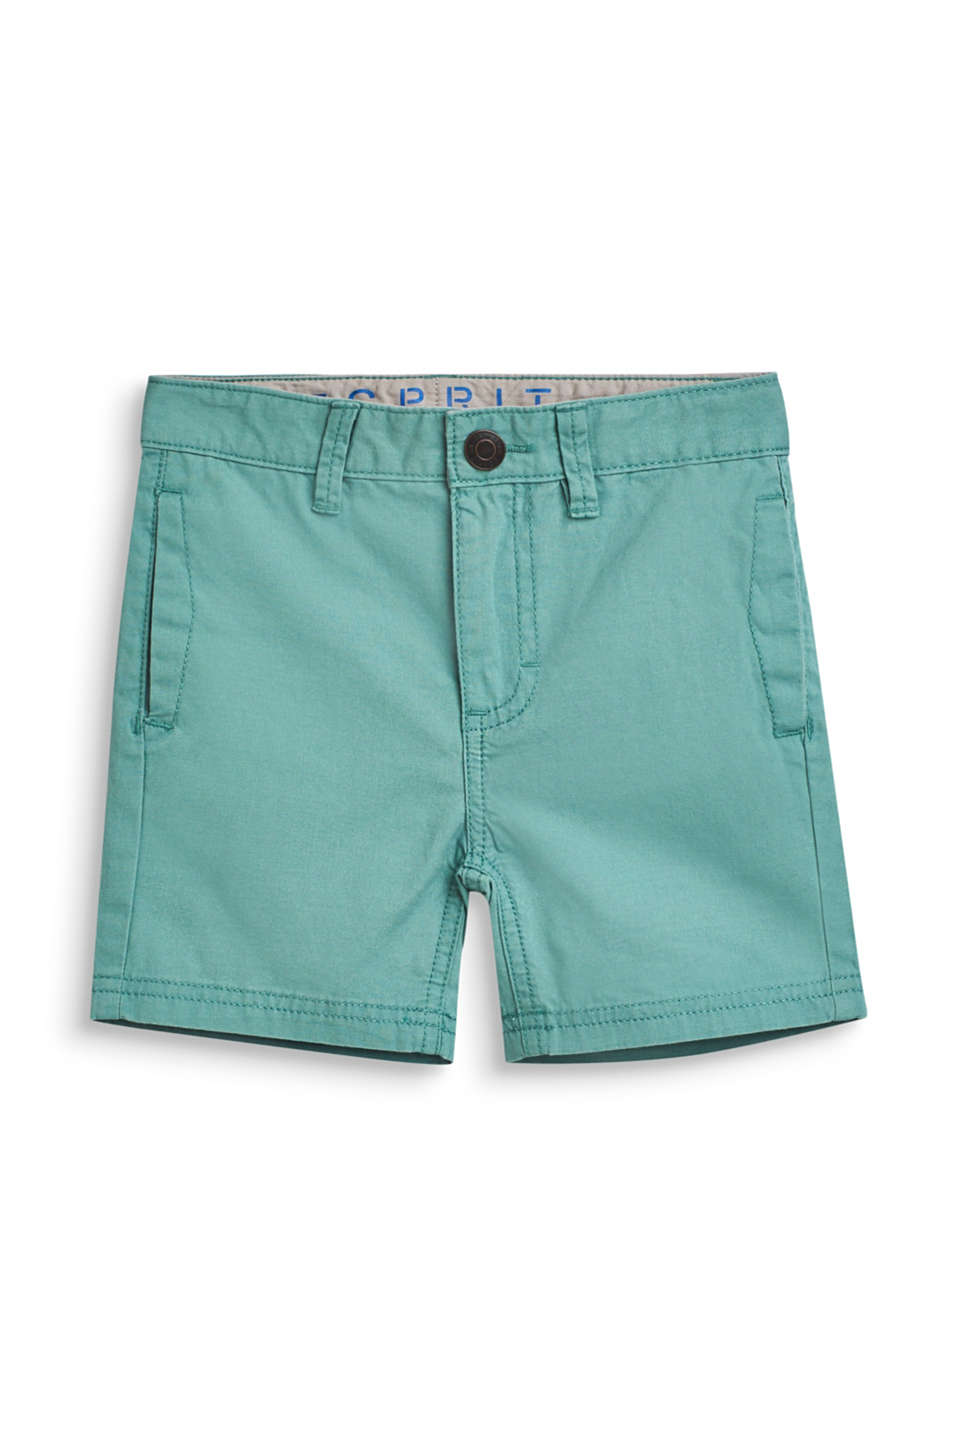 Shorts with adjustable waistband, 100% cotton, SOFT GREEN, detail image number 3